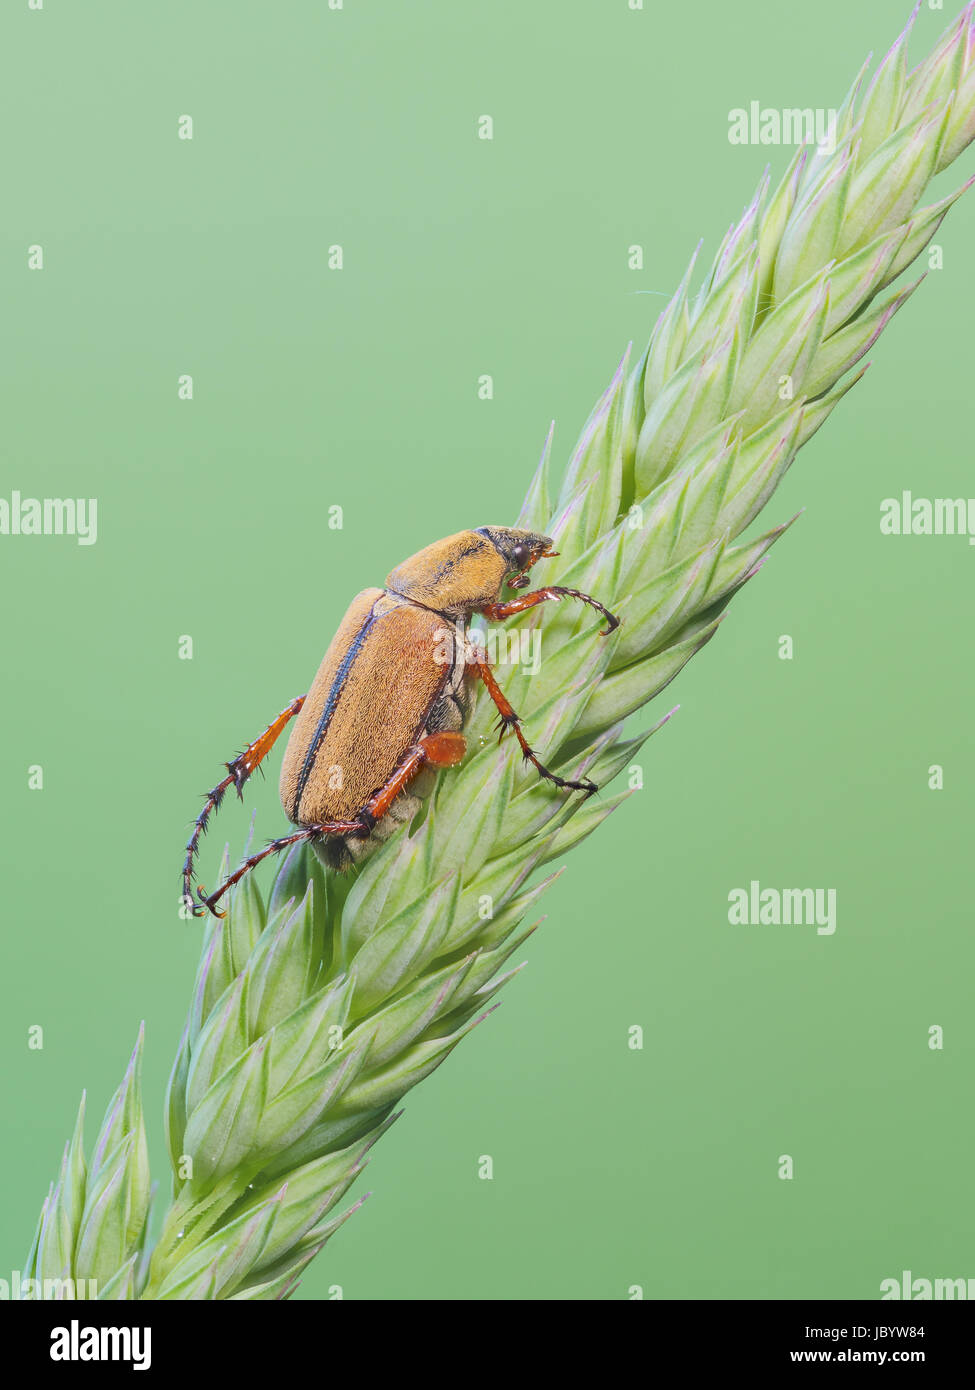 A sleeping Rose Chafer (Macrodactylus suspinosus) perches on a plant. - Stock Image